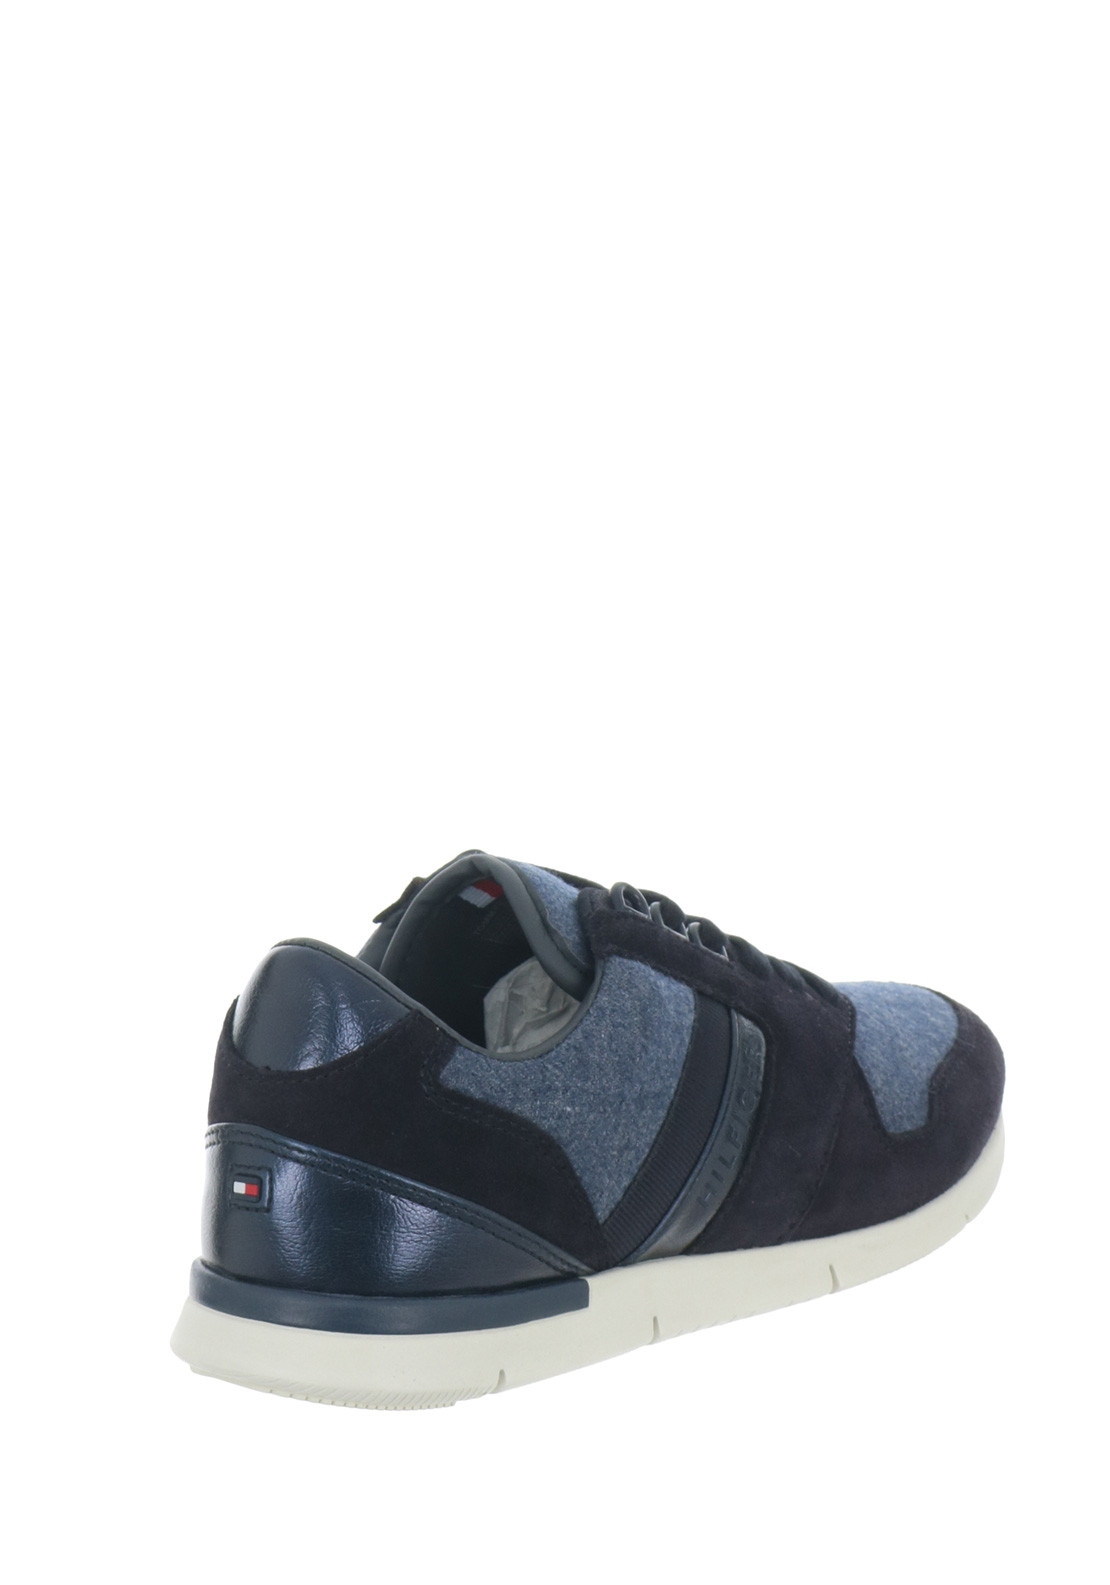 891403006bac3b Tommy Hilfiger Womens Skye Suede Trainers